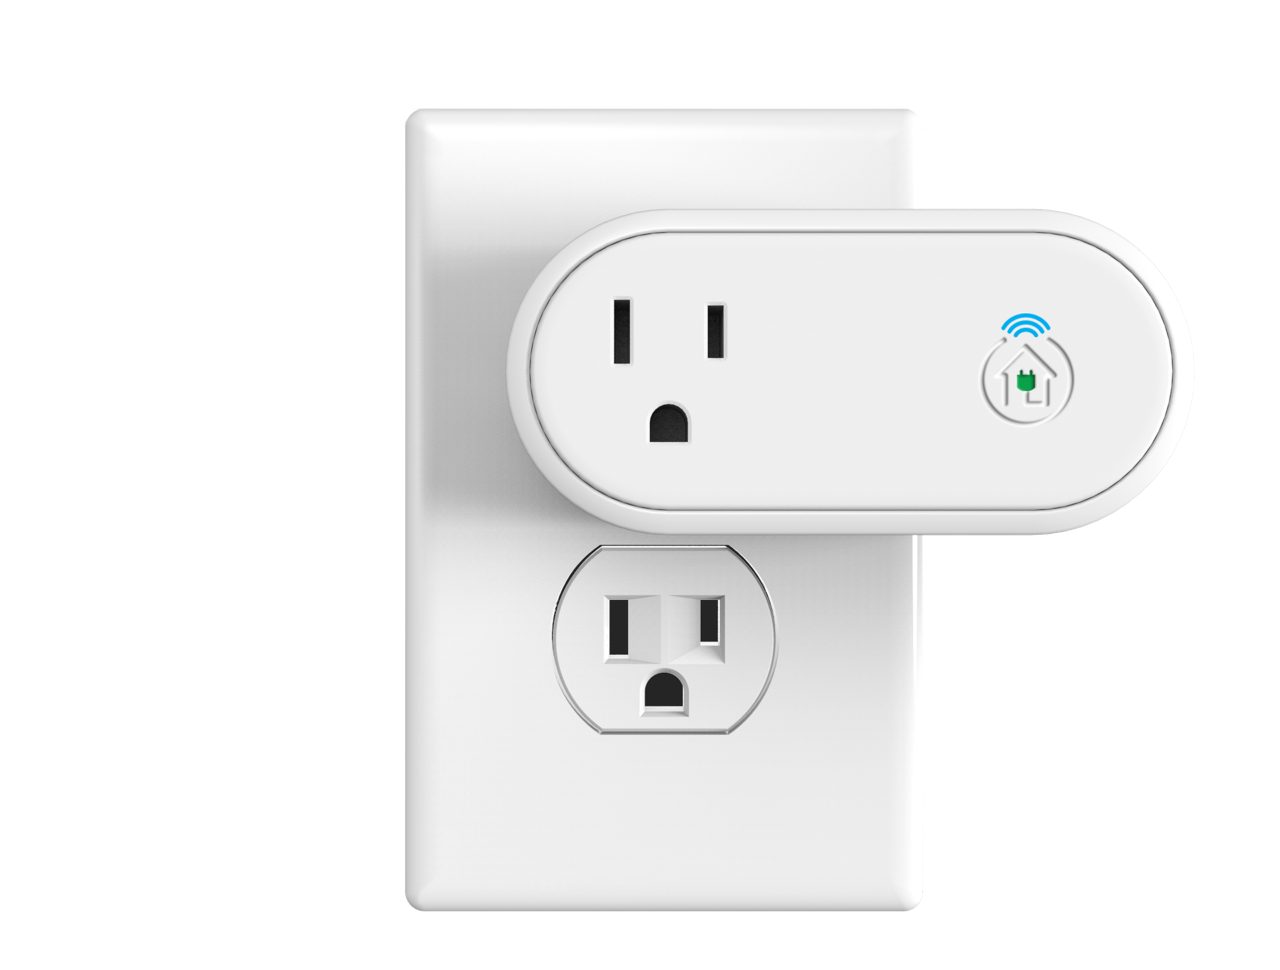 Incipio Direct Wireless Smart Wall Outlet